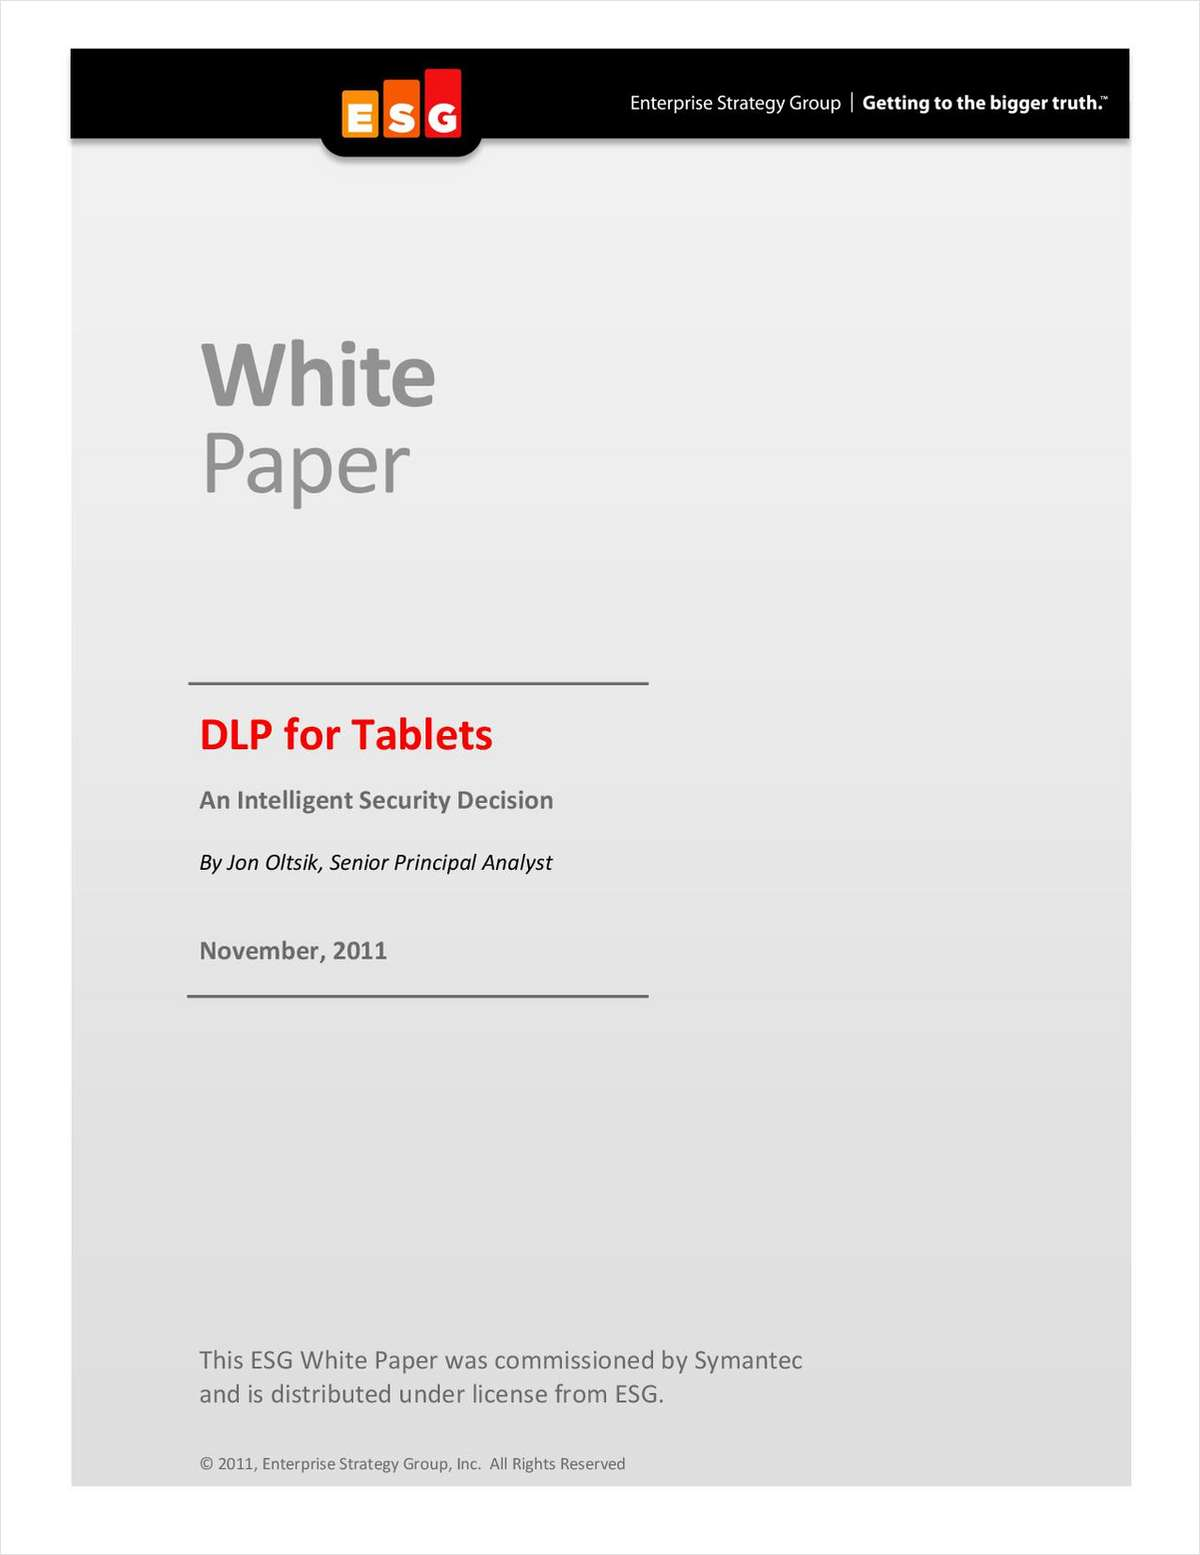 Symantec DLP for Tablets: An Intelligent Security Decision